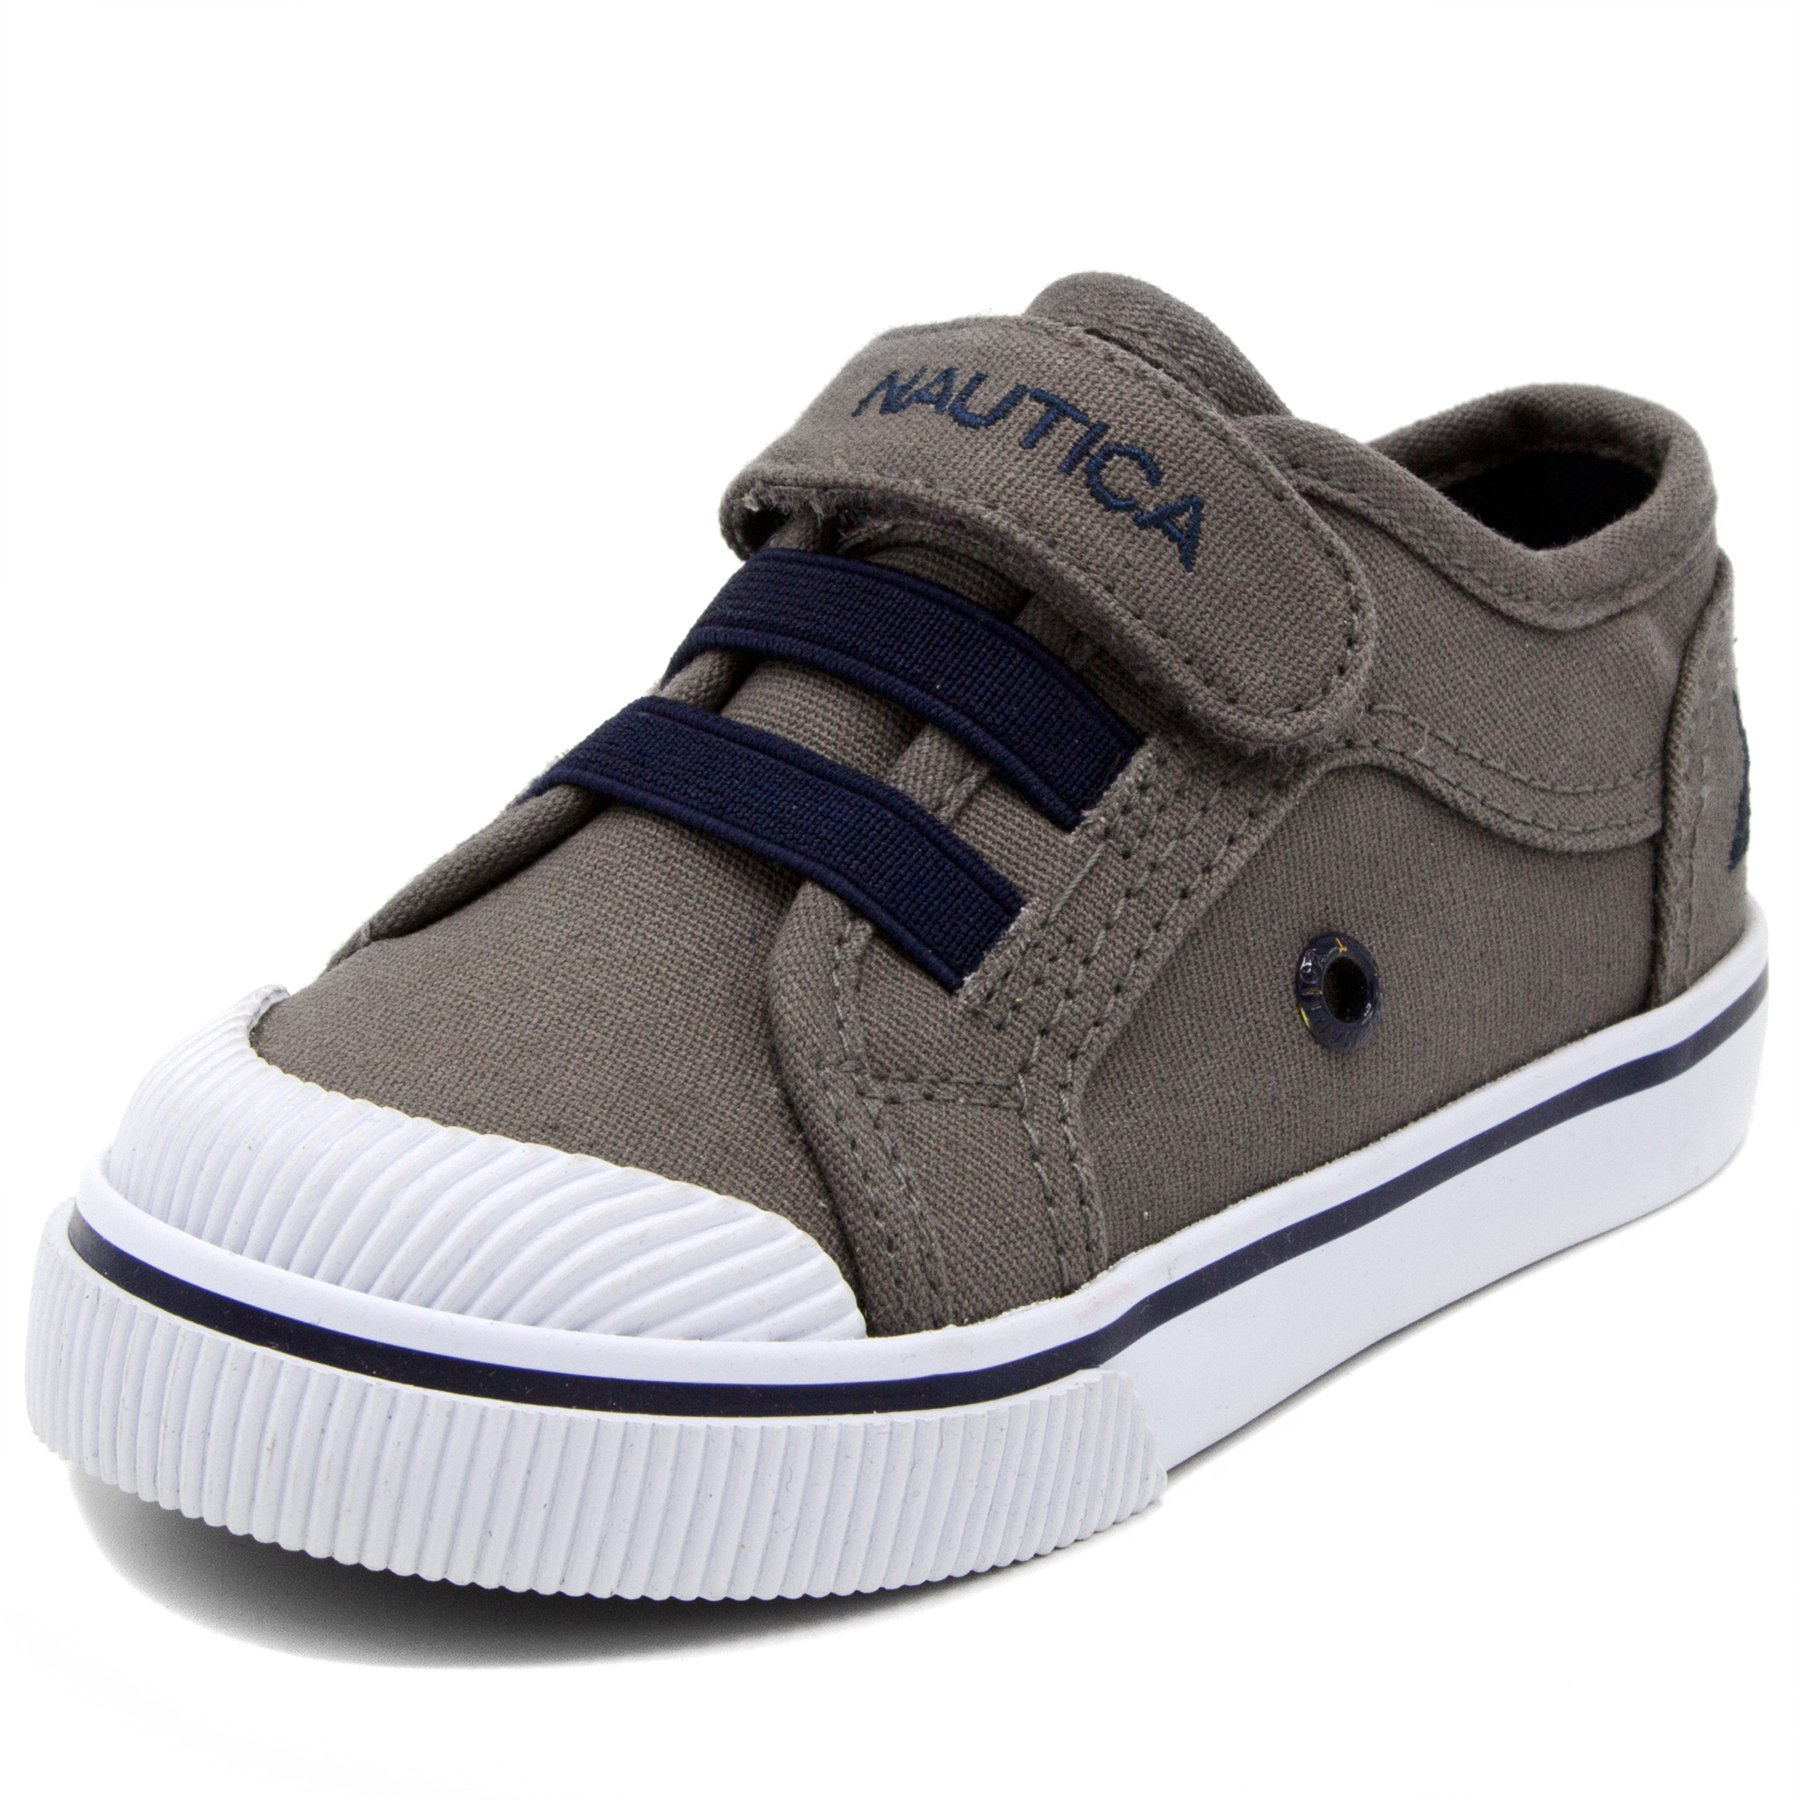 Nautica Kids Calloway Canvas Sneakers Velcro Bungee Straps Casual Shoes-Grey/Navy-10